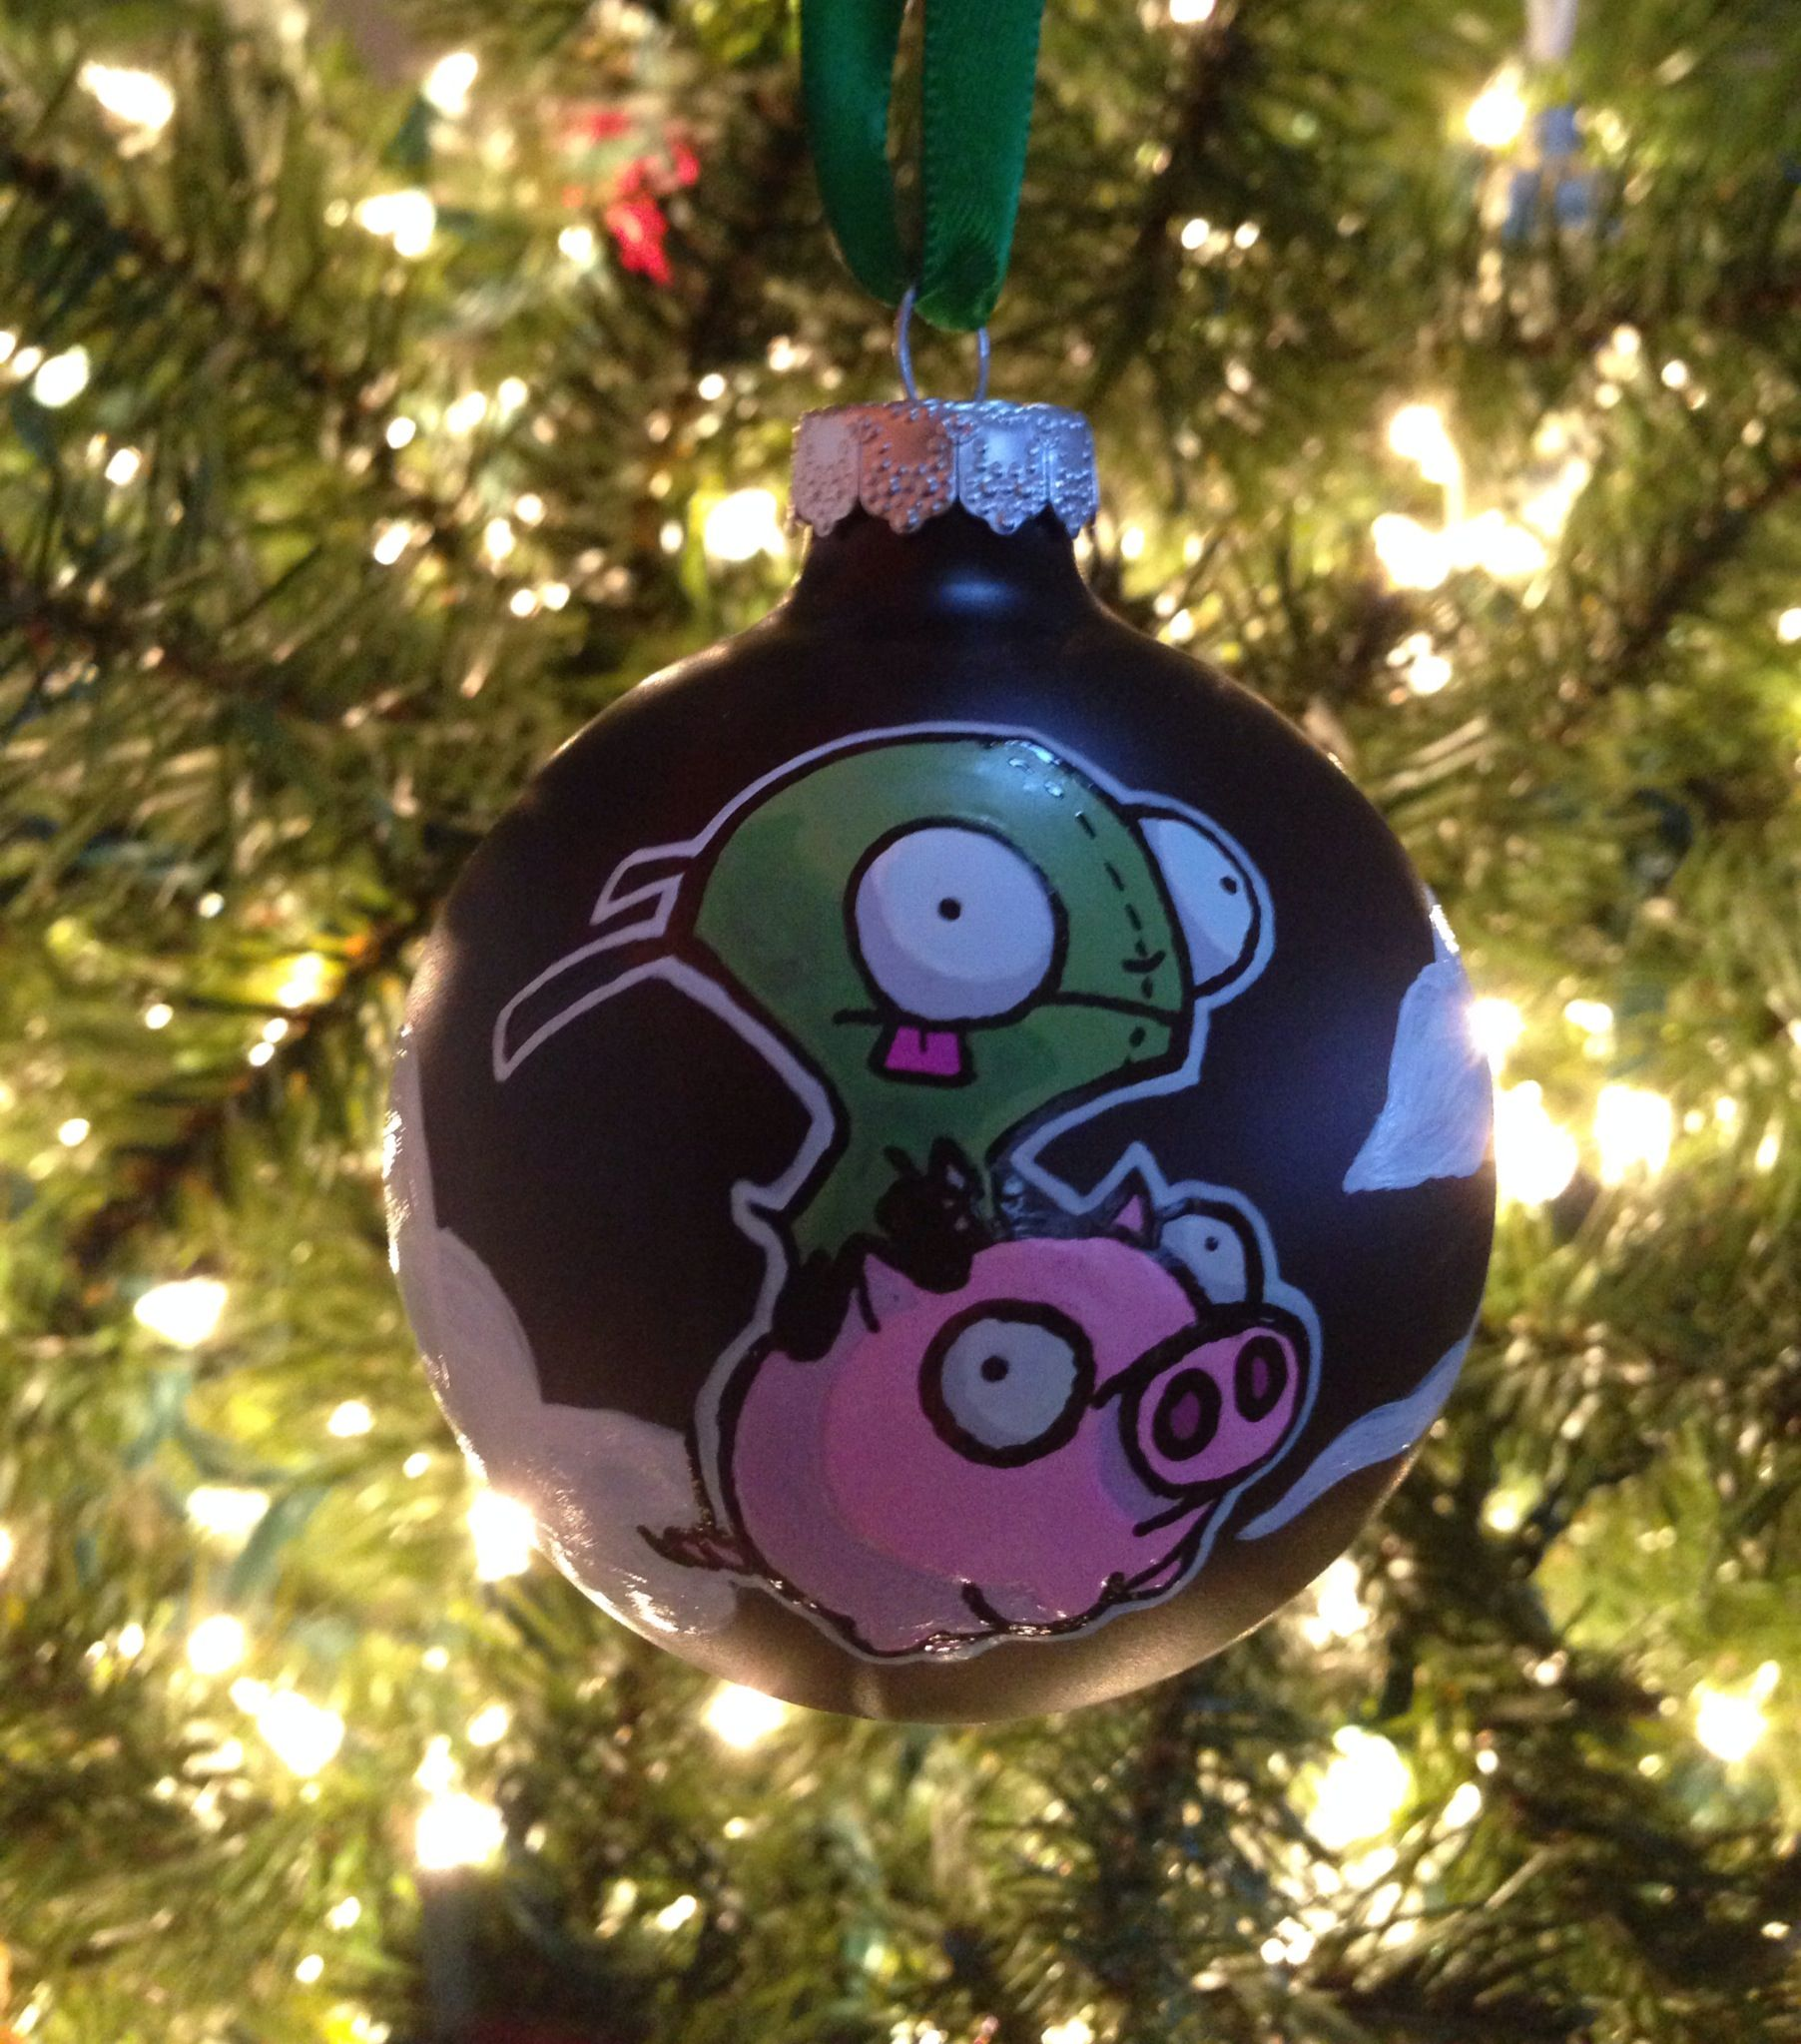 Invader Zim / Gir ornament front (1 of 2)  By K.D. Aiardo